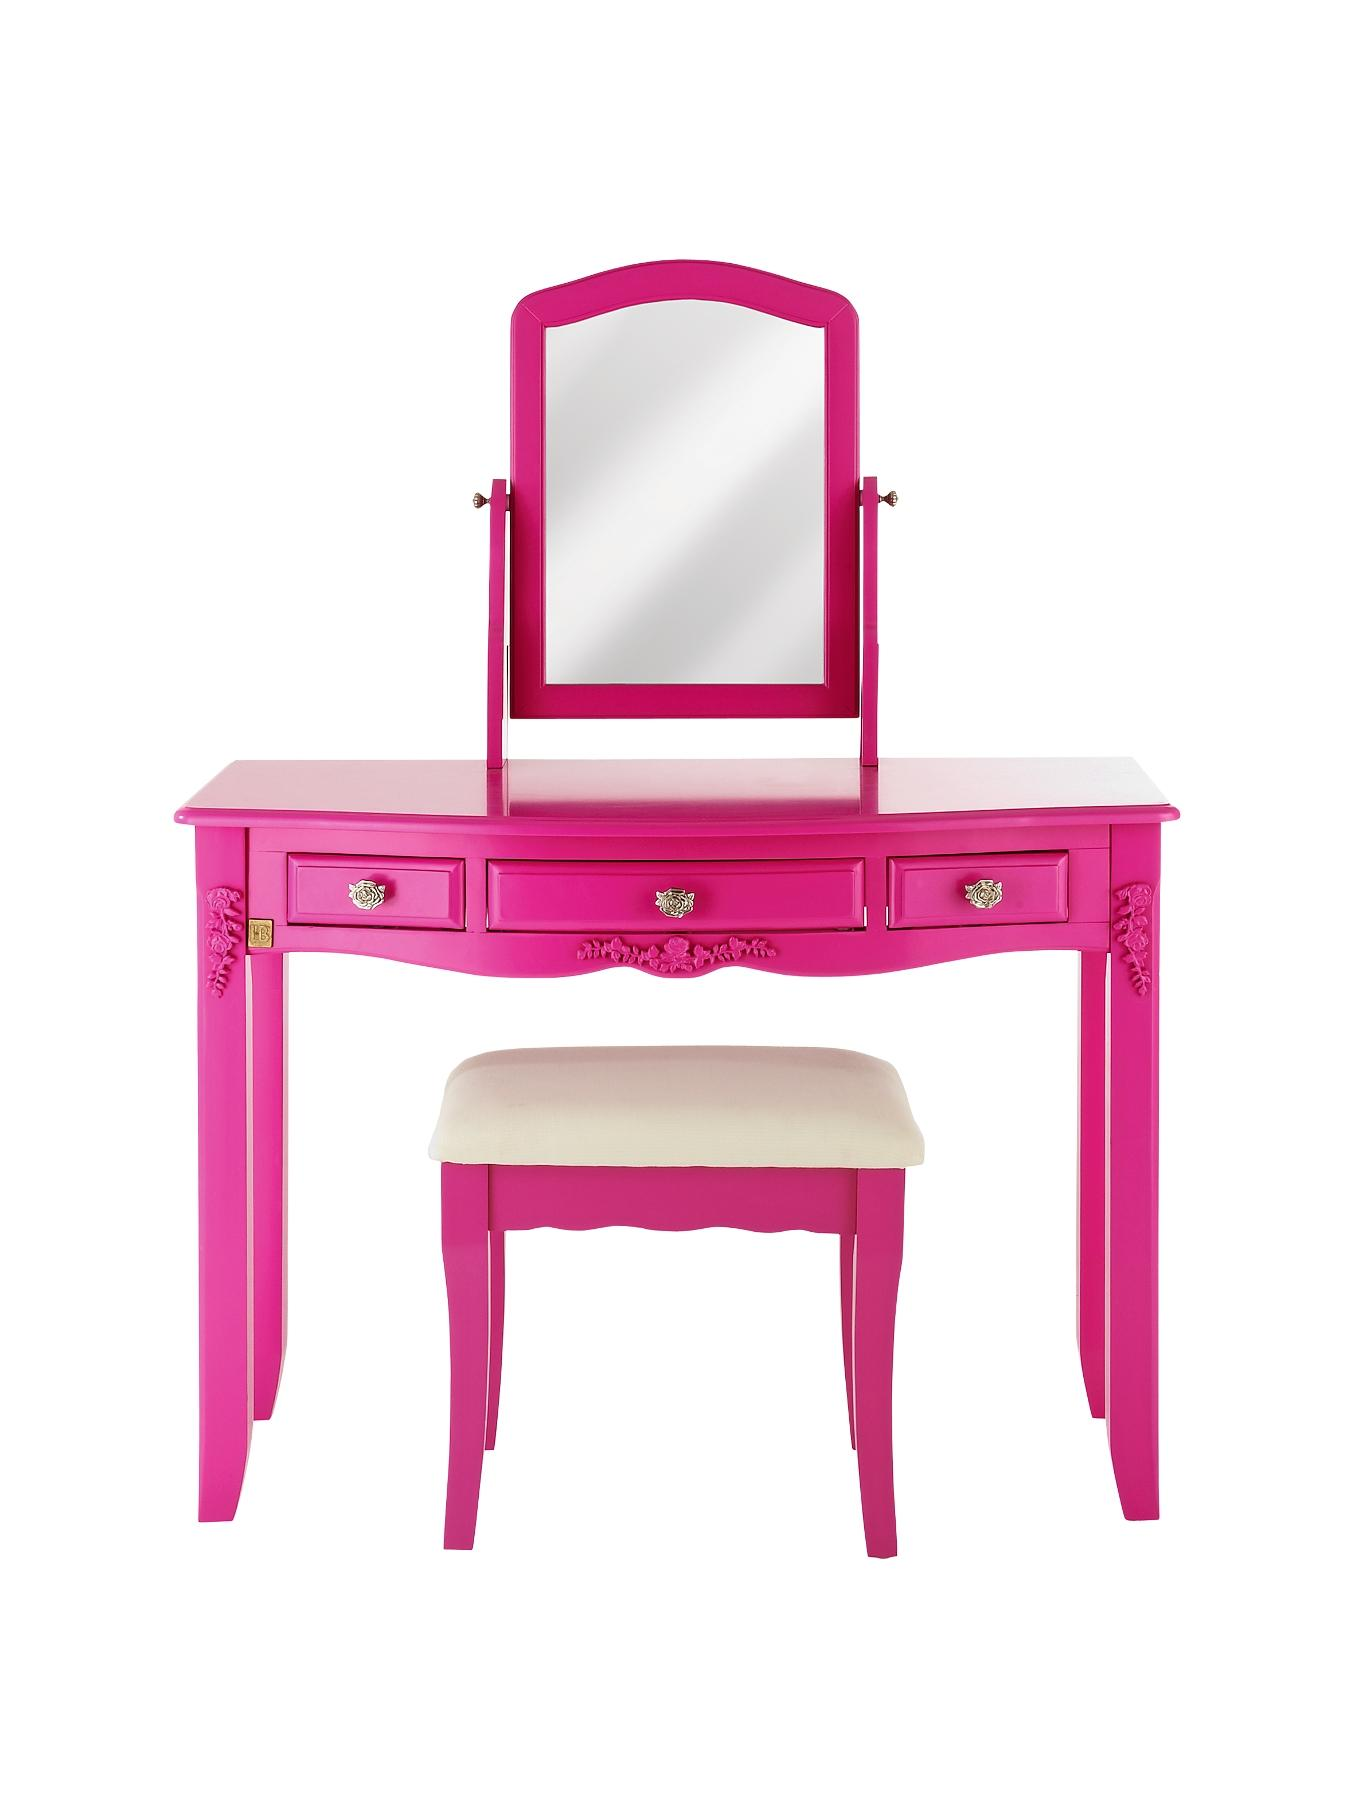 Bonjour Boudoir Kids Dressing Table, Stool and Mirror, Ivory,Pink